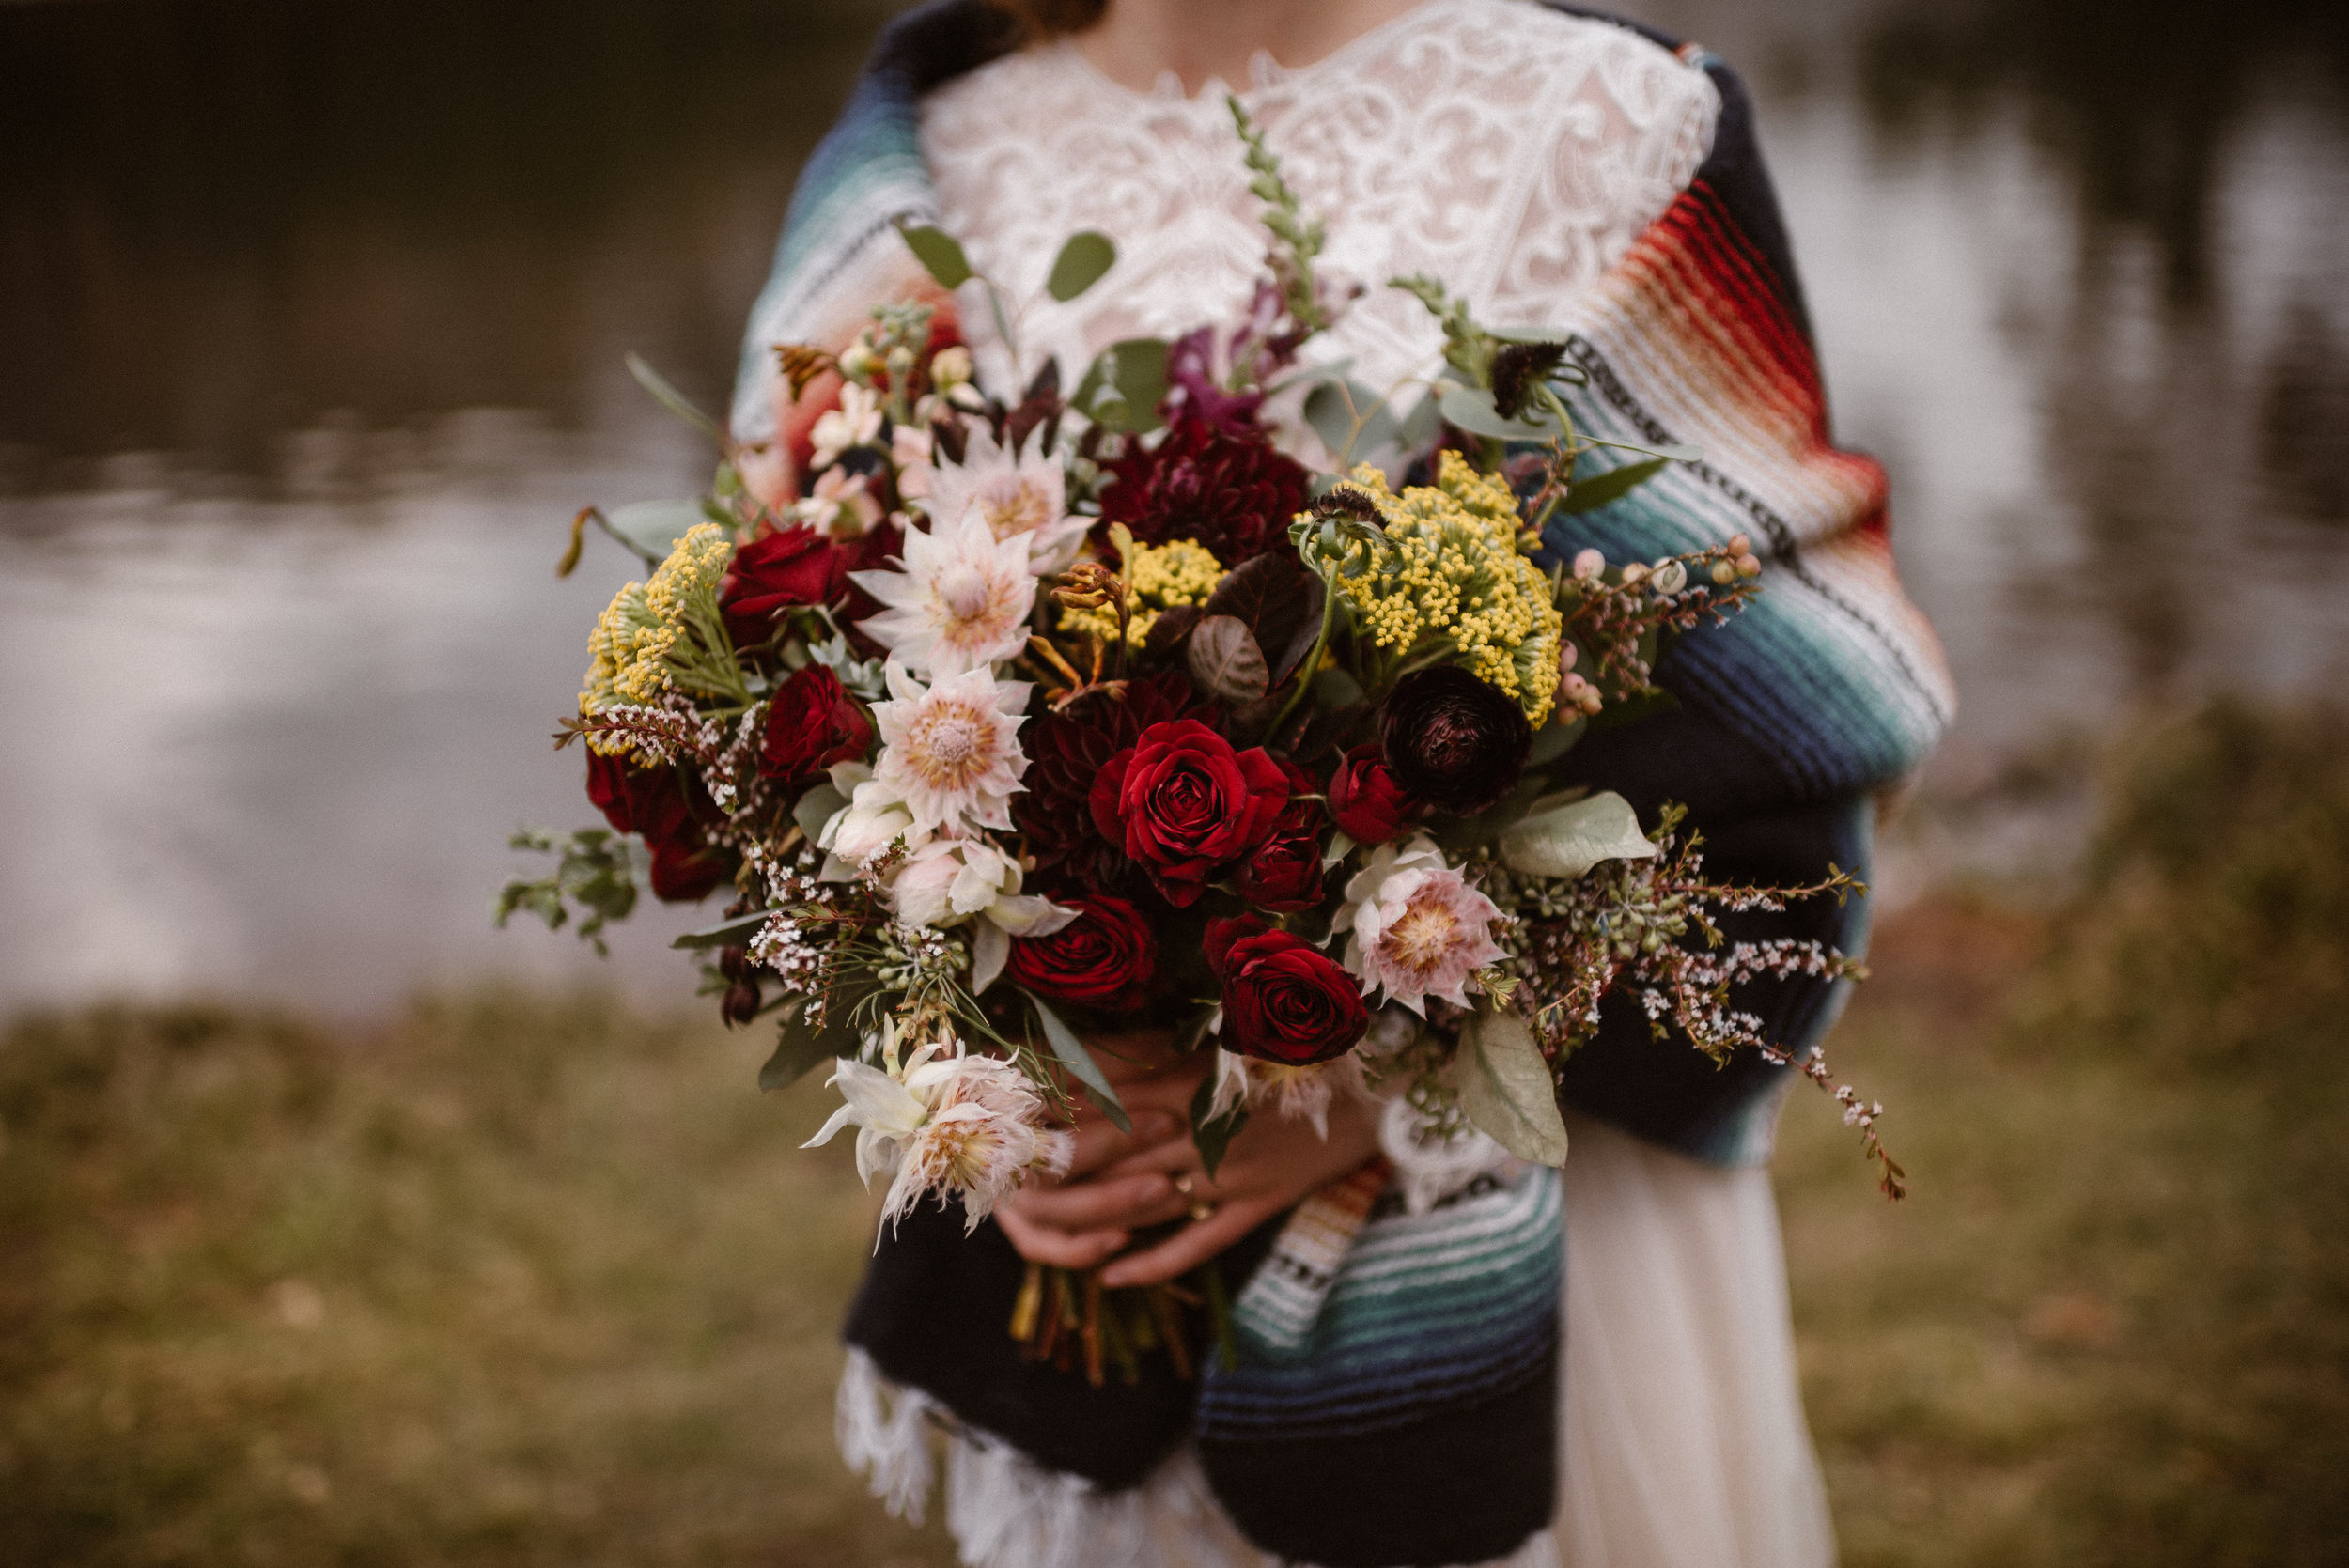 Flowers by Lace and Lilies, wedding flowers, bridal bouquet, elopement, elopement flowers, elopement bouquet, adventure instead, mountain elopement